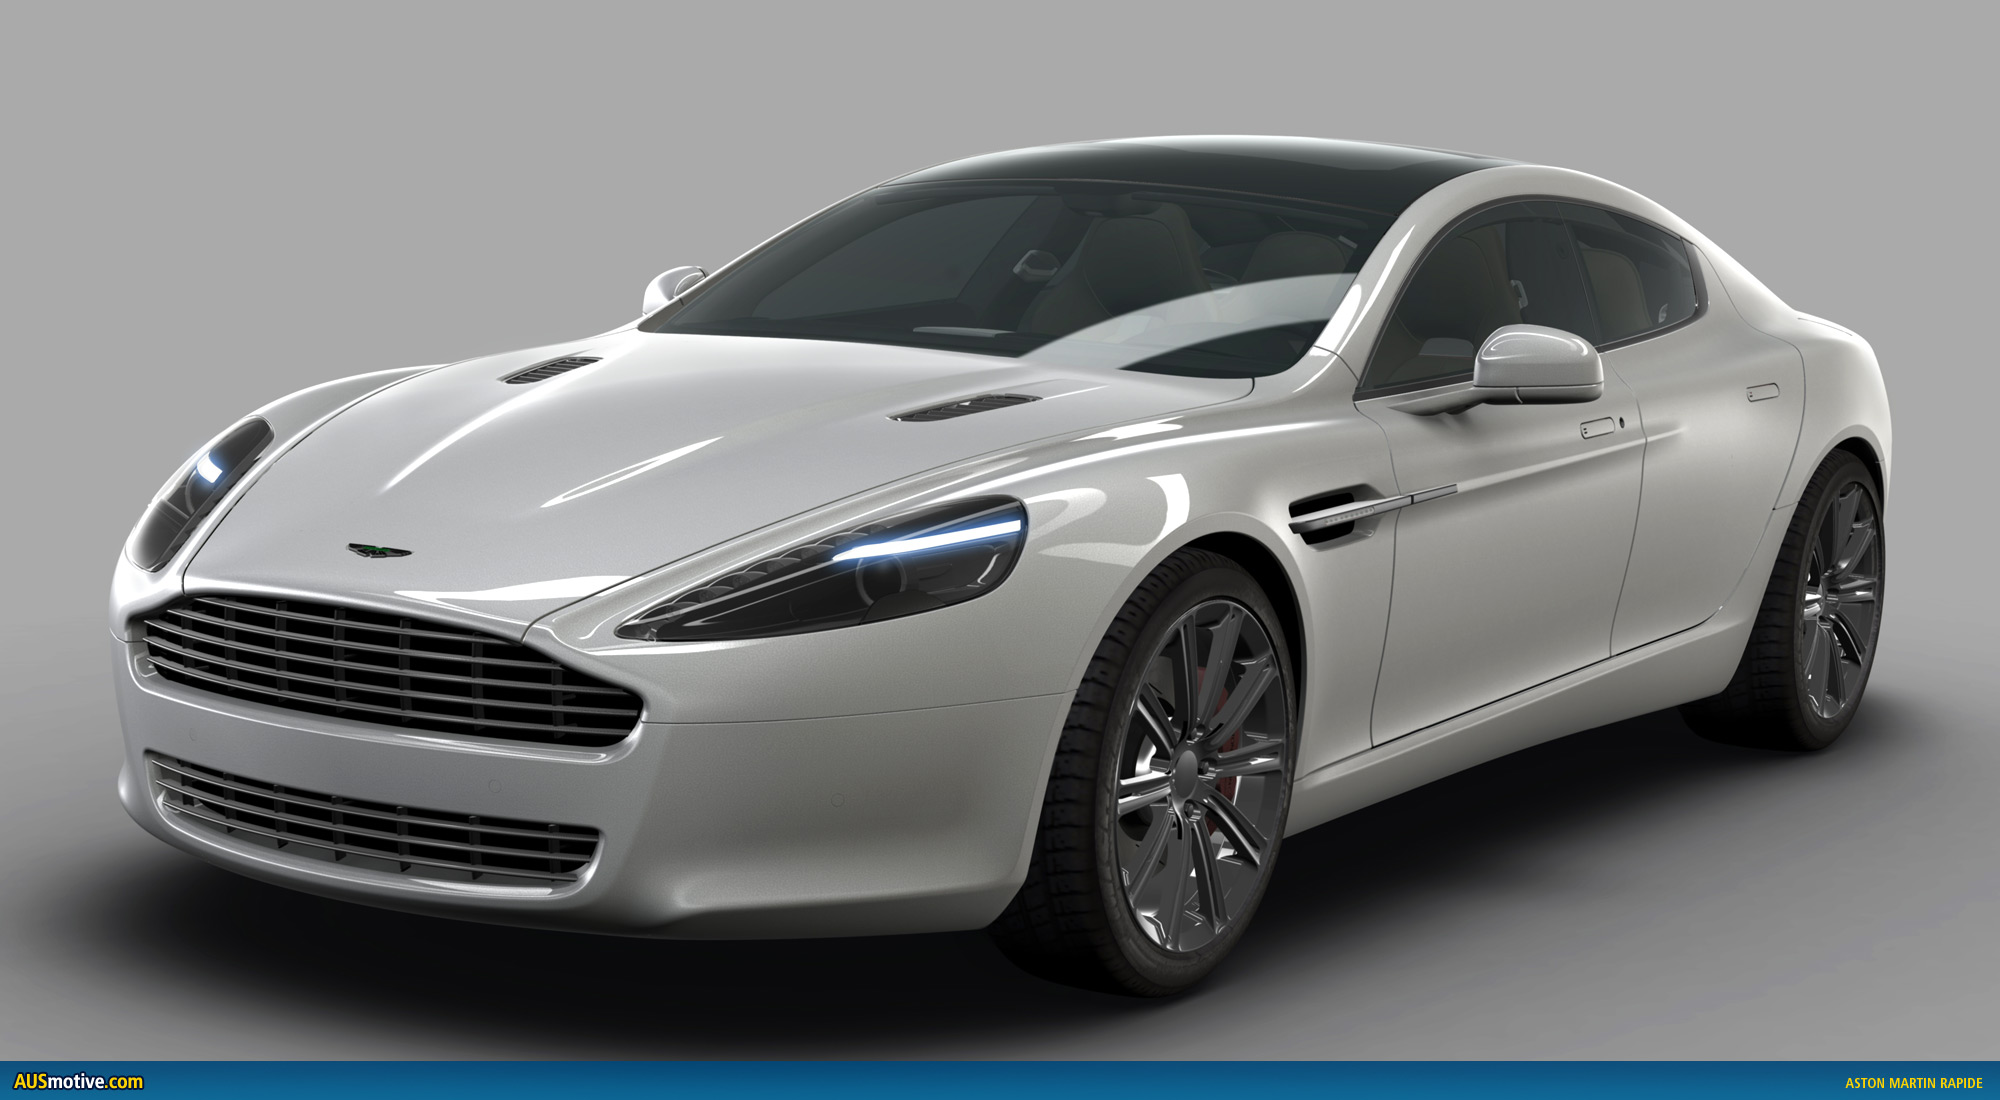 Ausmotivecom » Aston Martin Rapide  Official Renderings